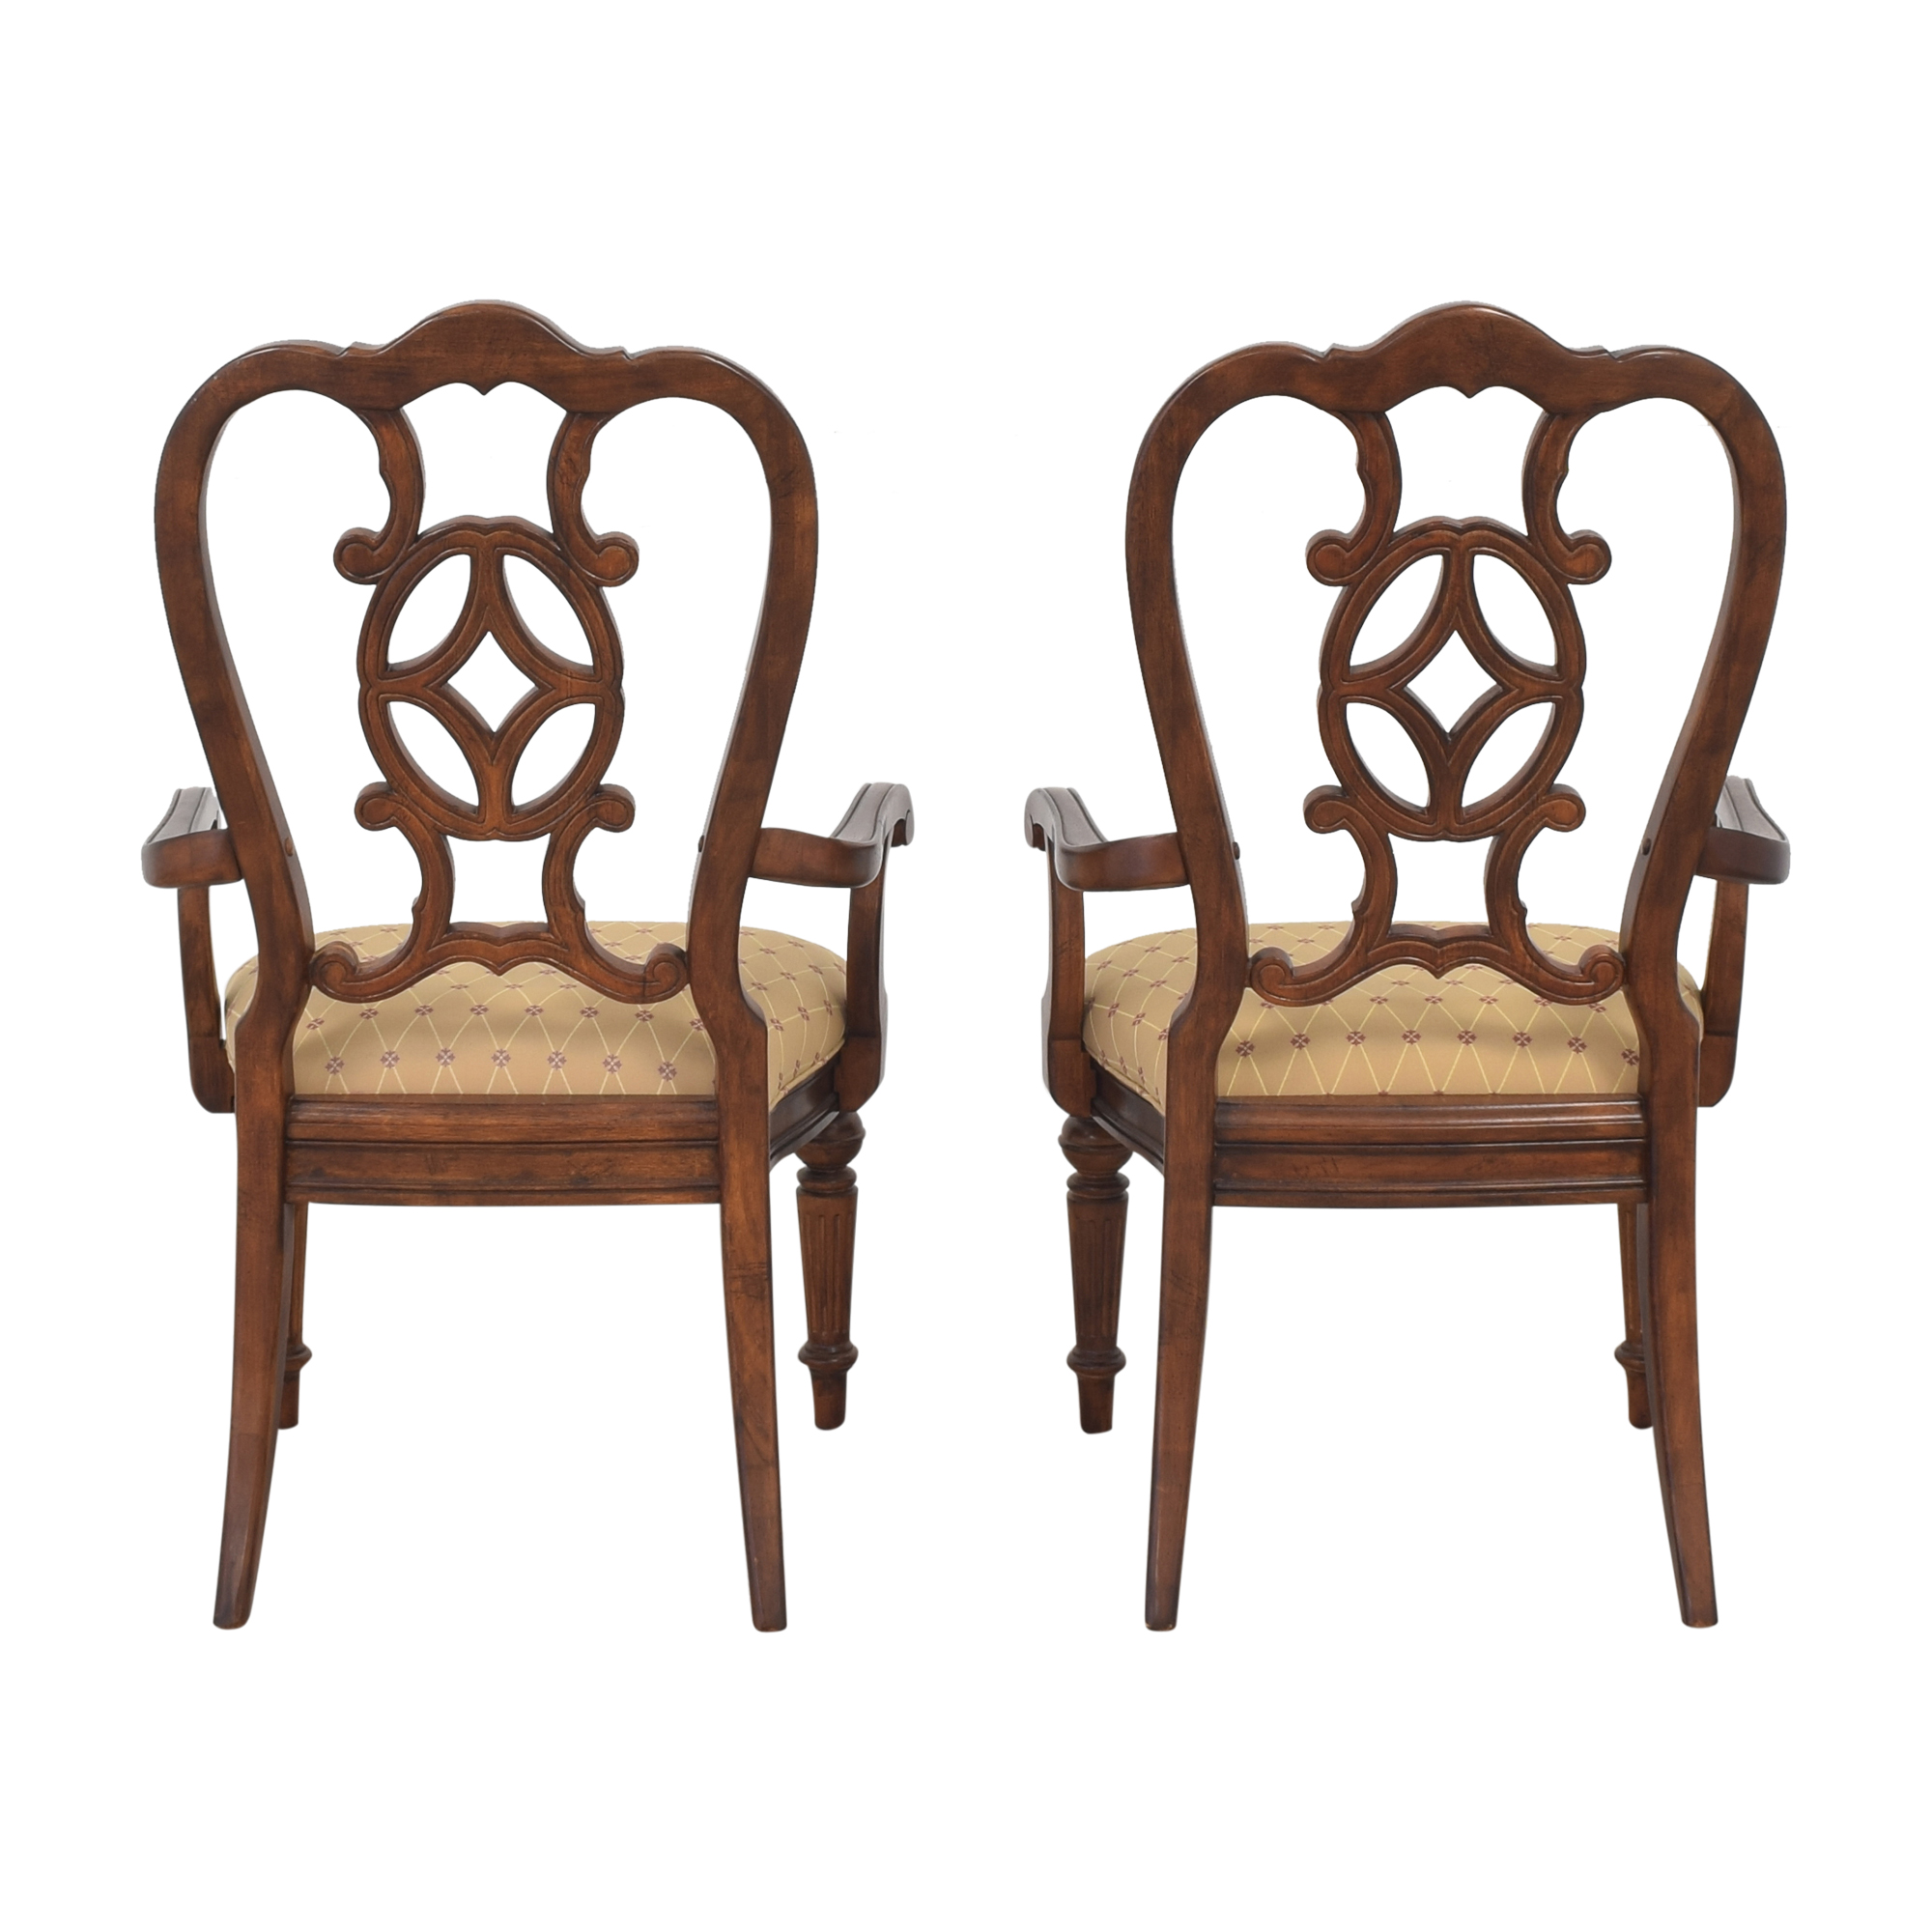 Thomasville Thomasville Dining Arm Chairs for sale